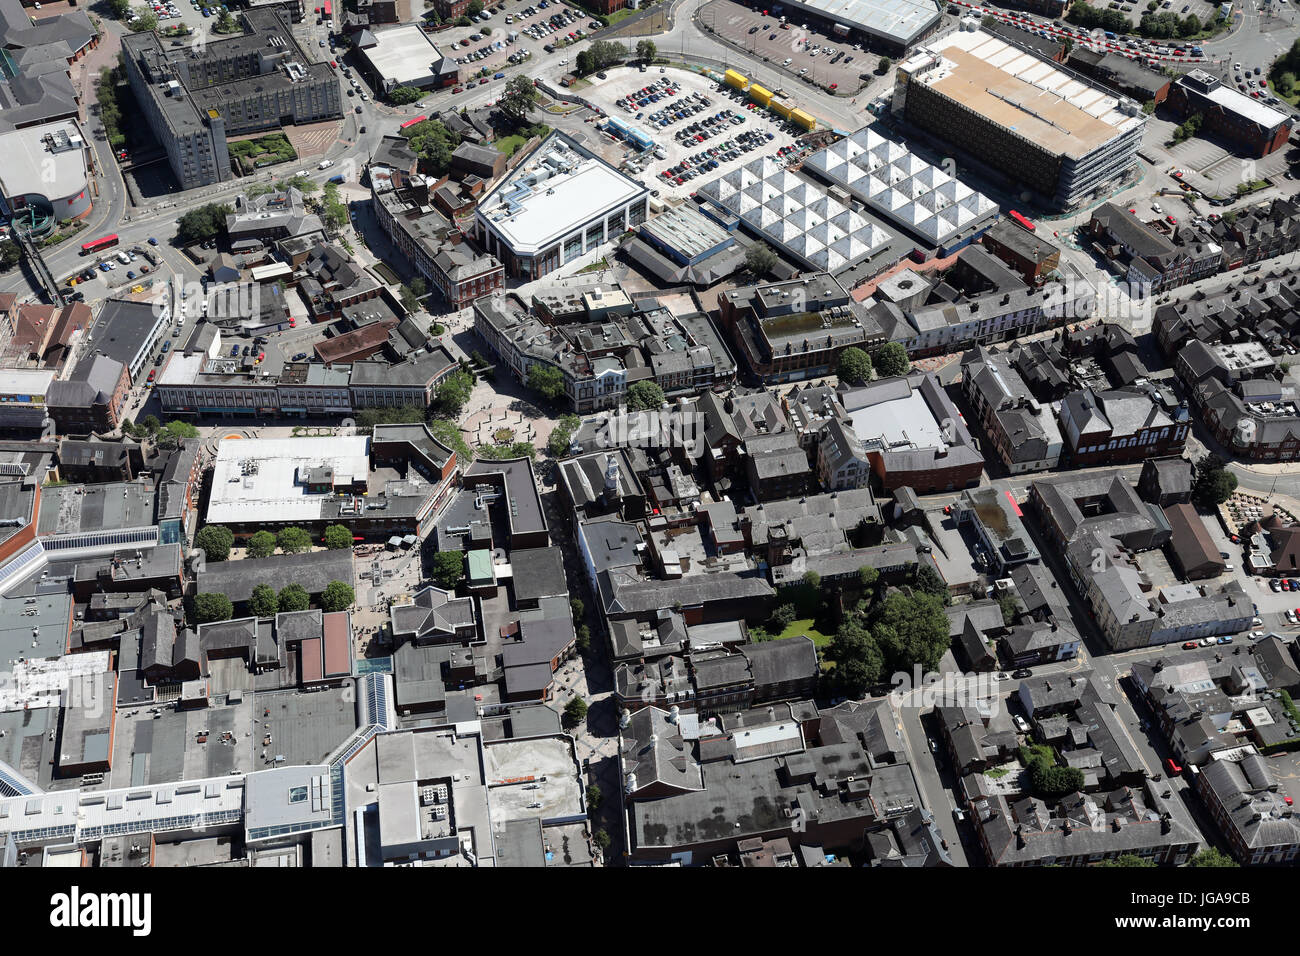 aerial view of Warrington town centre, Cheshire, UK Stock Photo